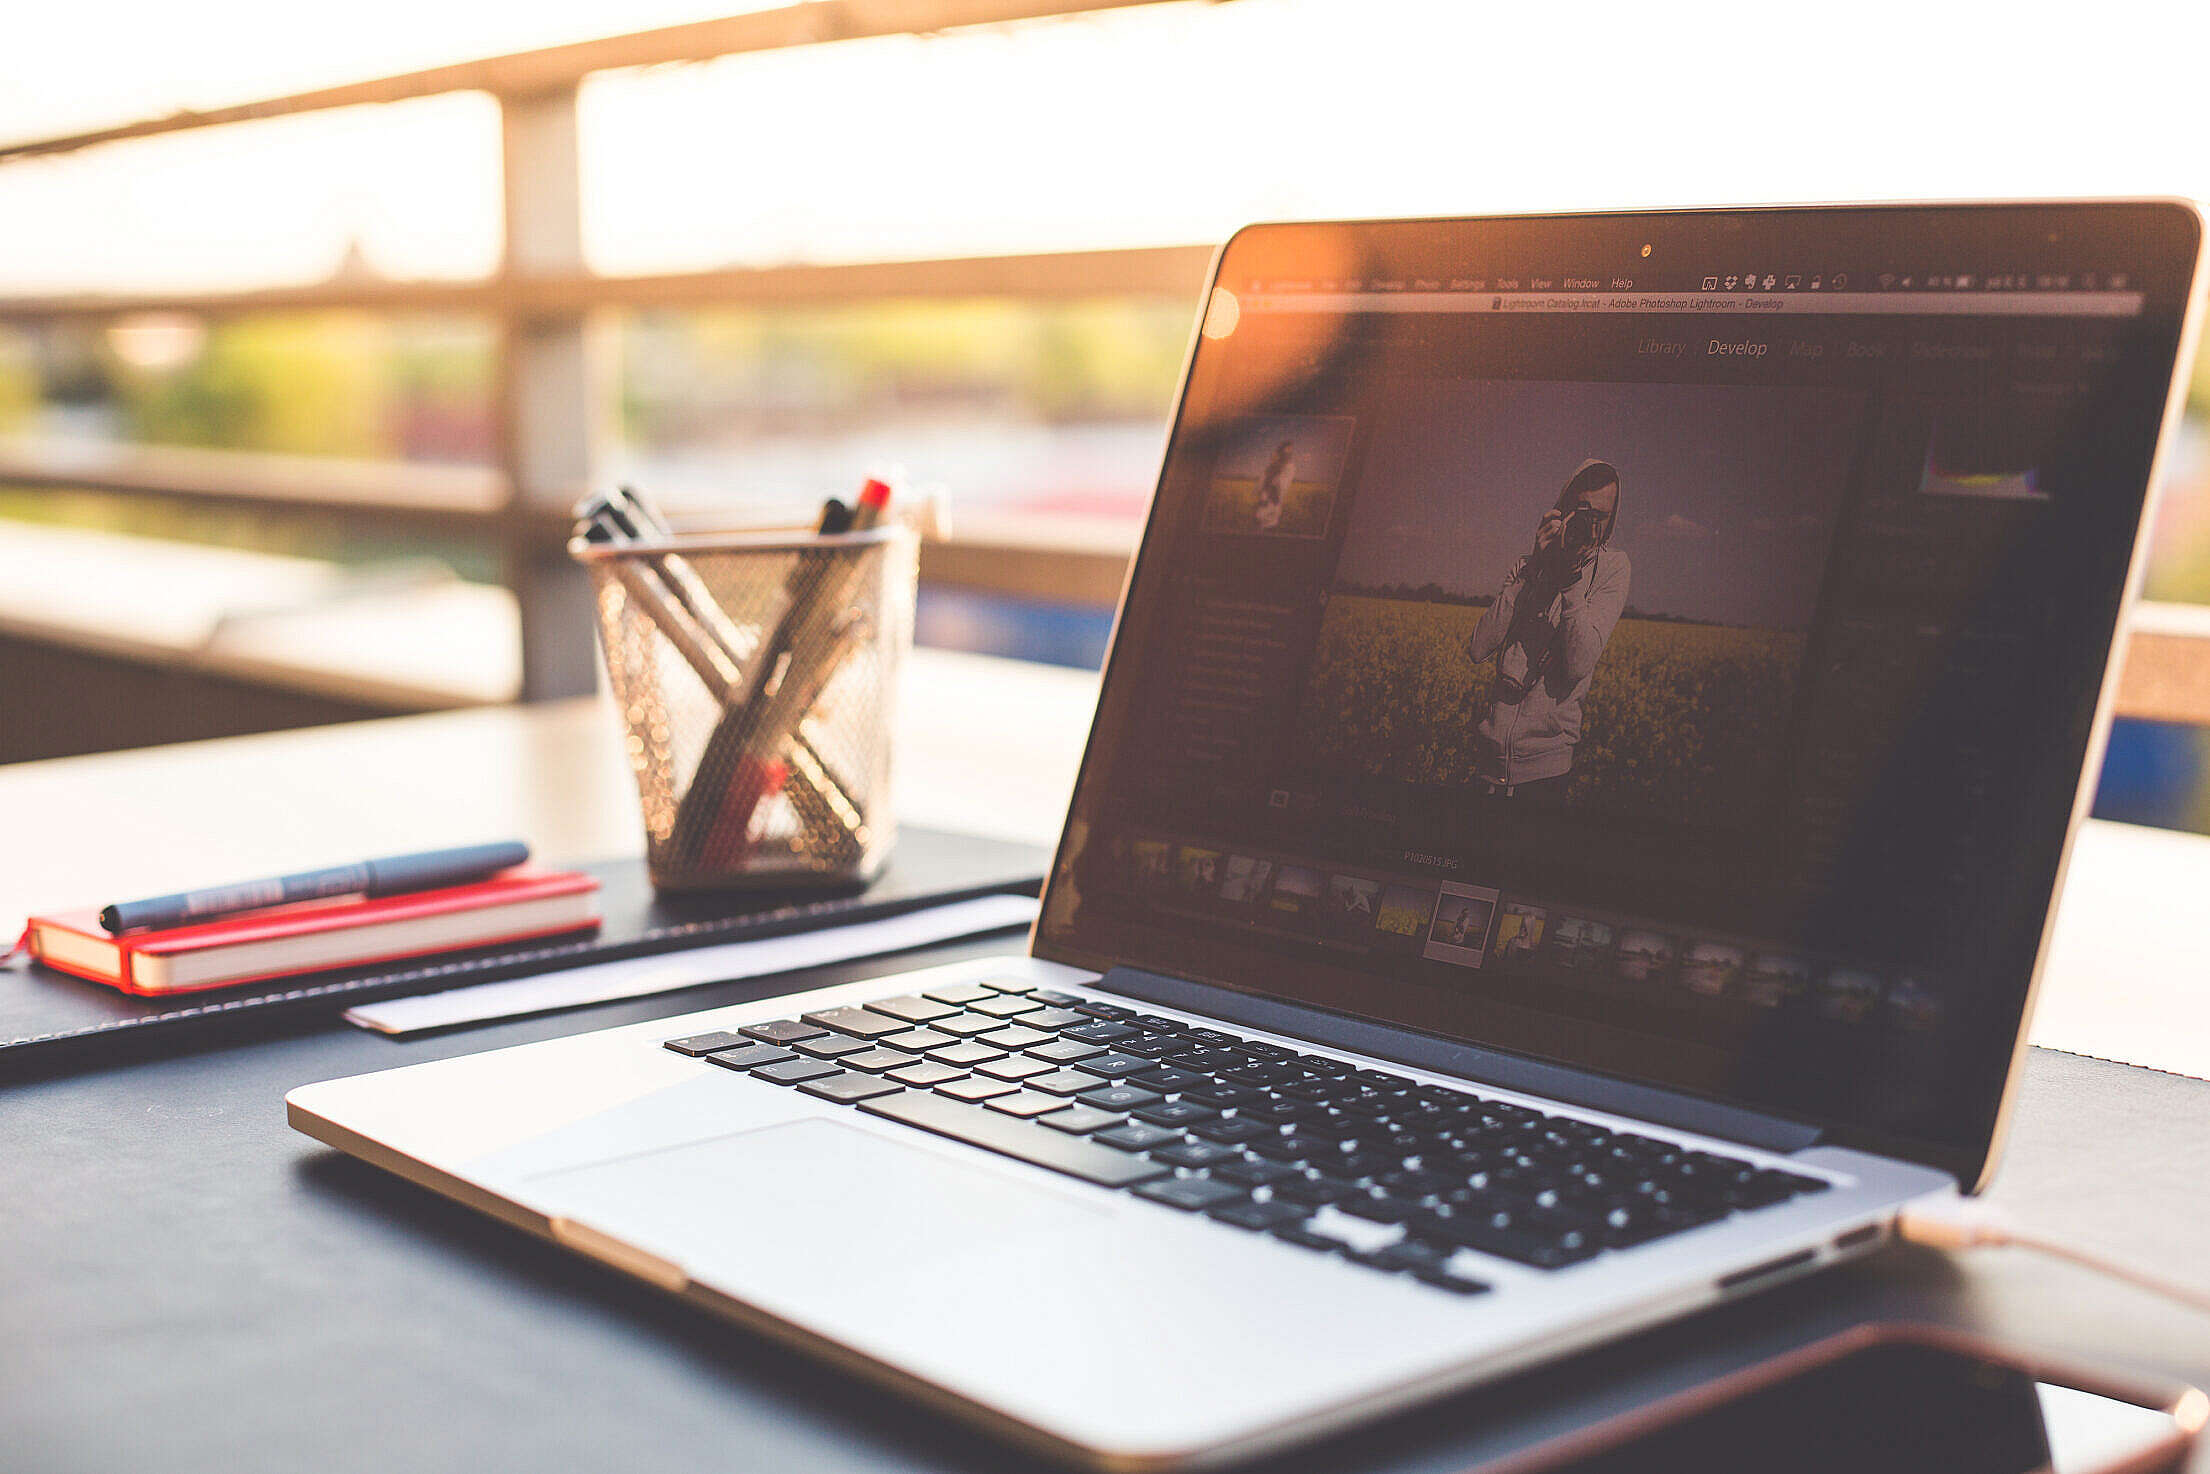 Outdoor Garden Office Working Desk With Laptop Free Stock Photo